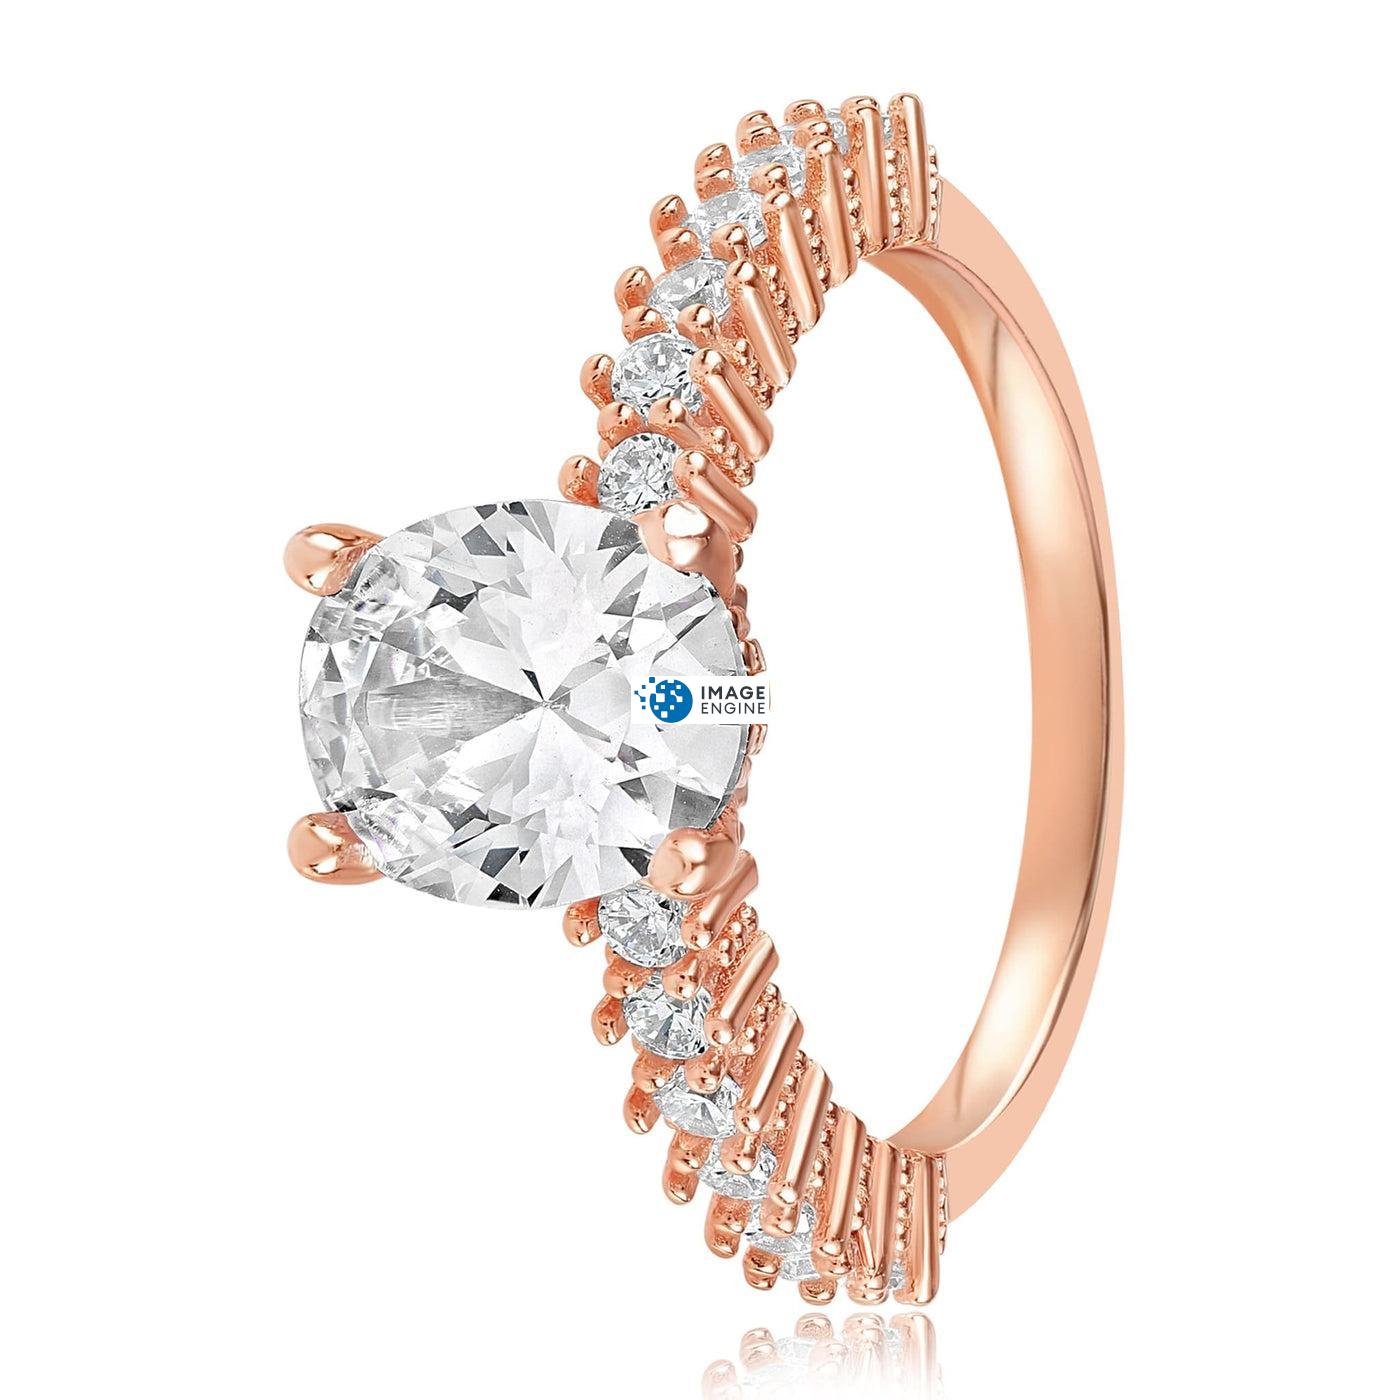 Cara Zirconia Ring - Side View - 18K Rose Gold Vermeil